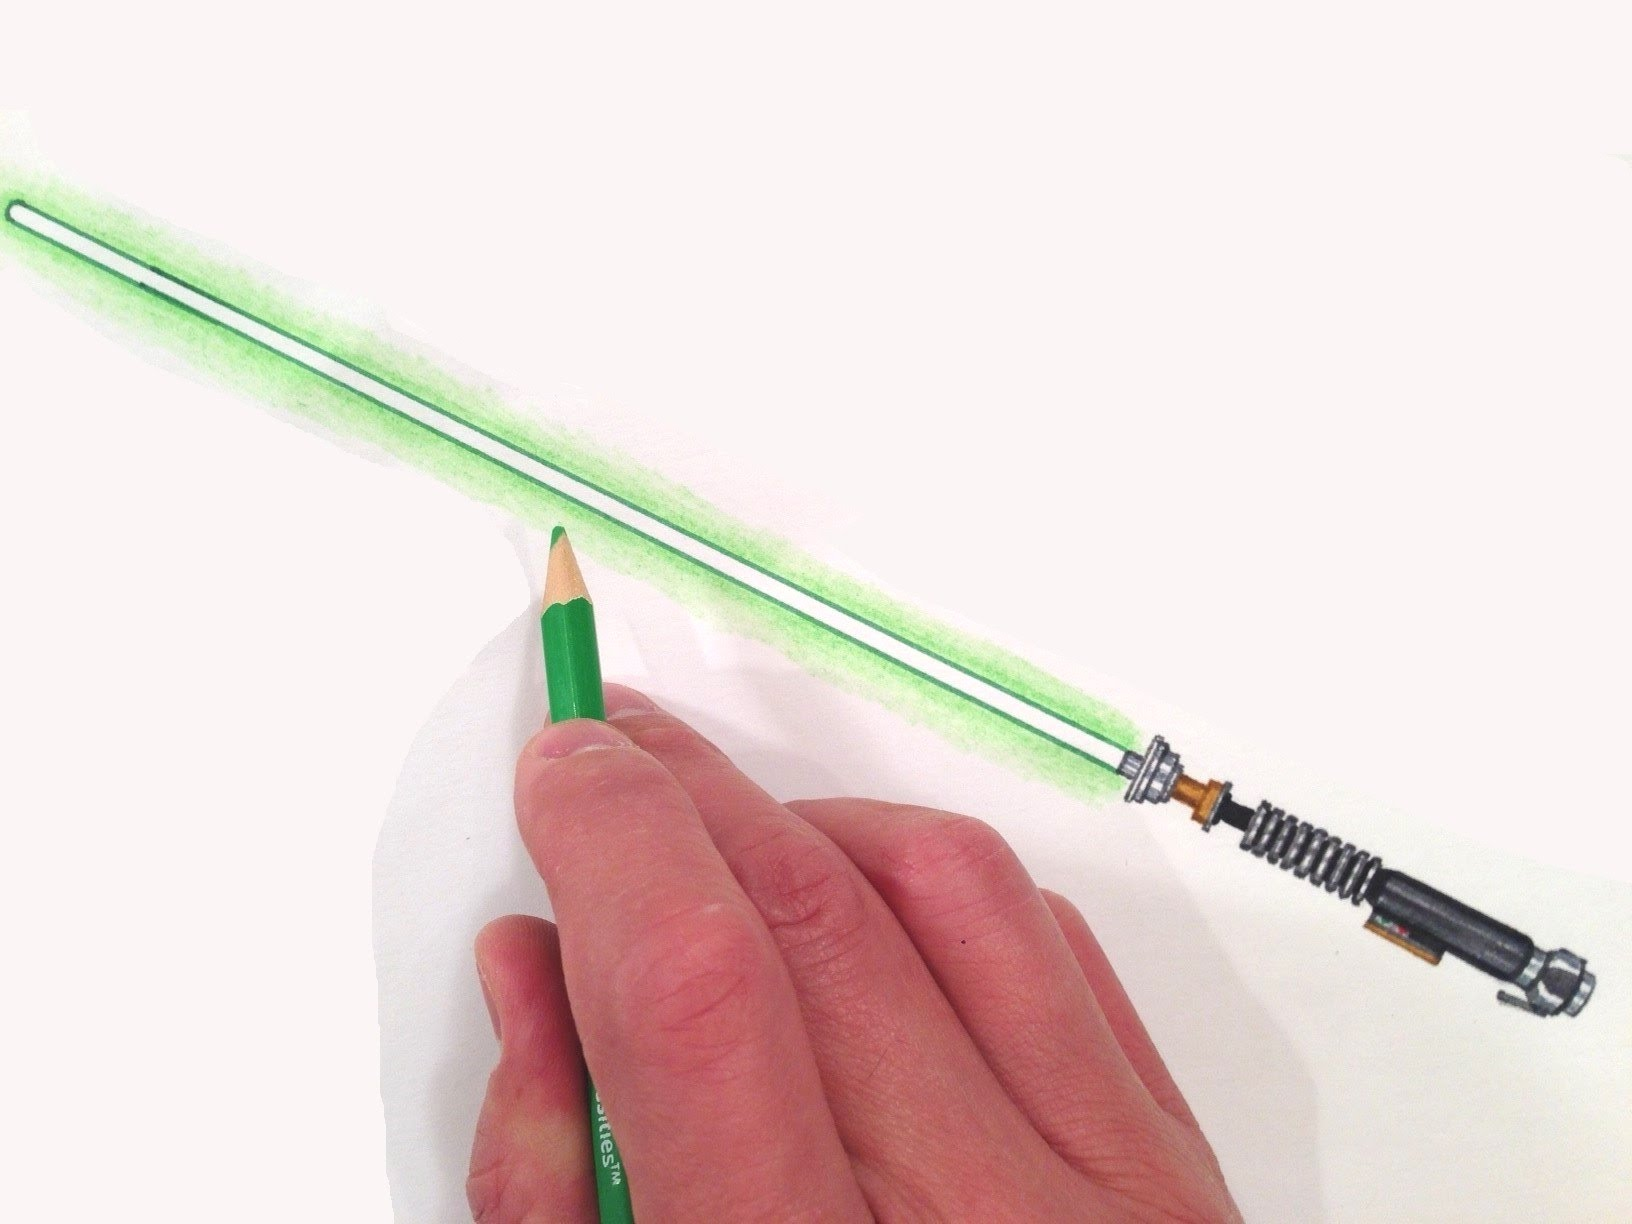 Saber clipart green lightsaber. How to draw luke